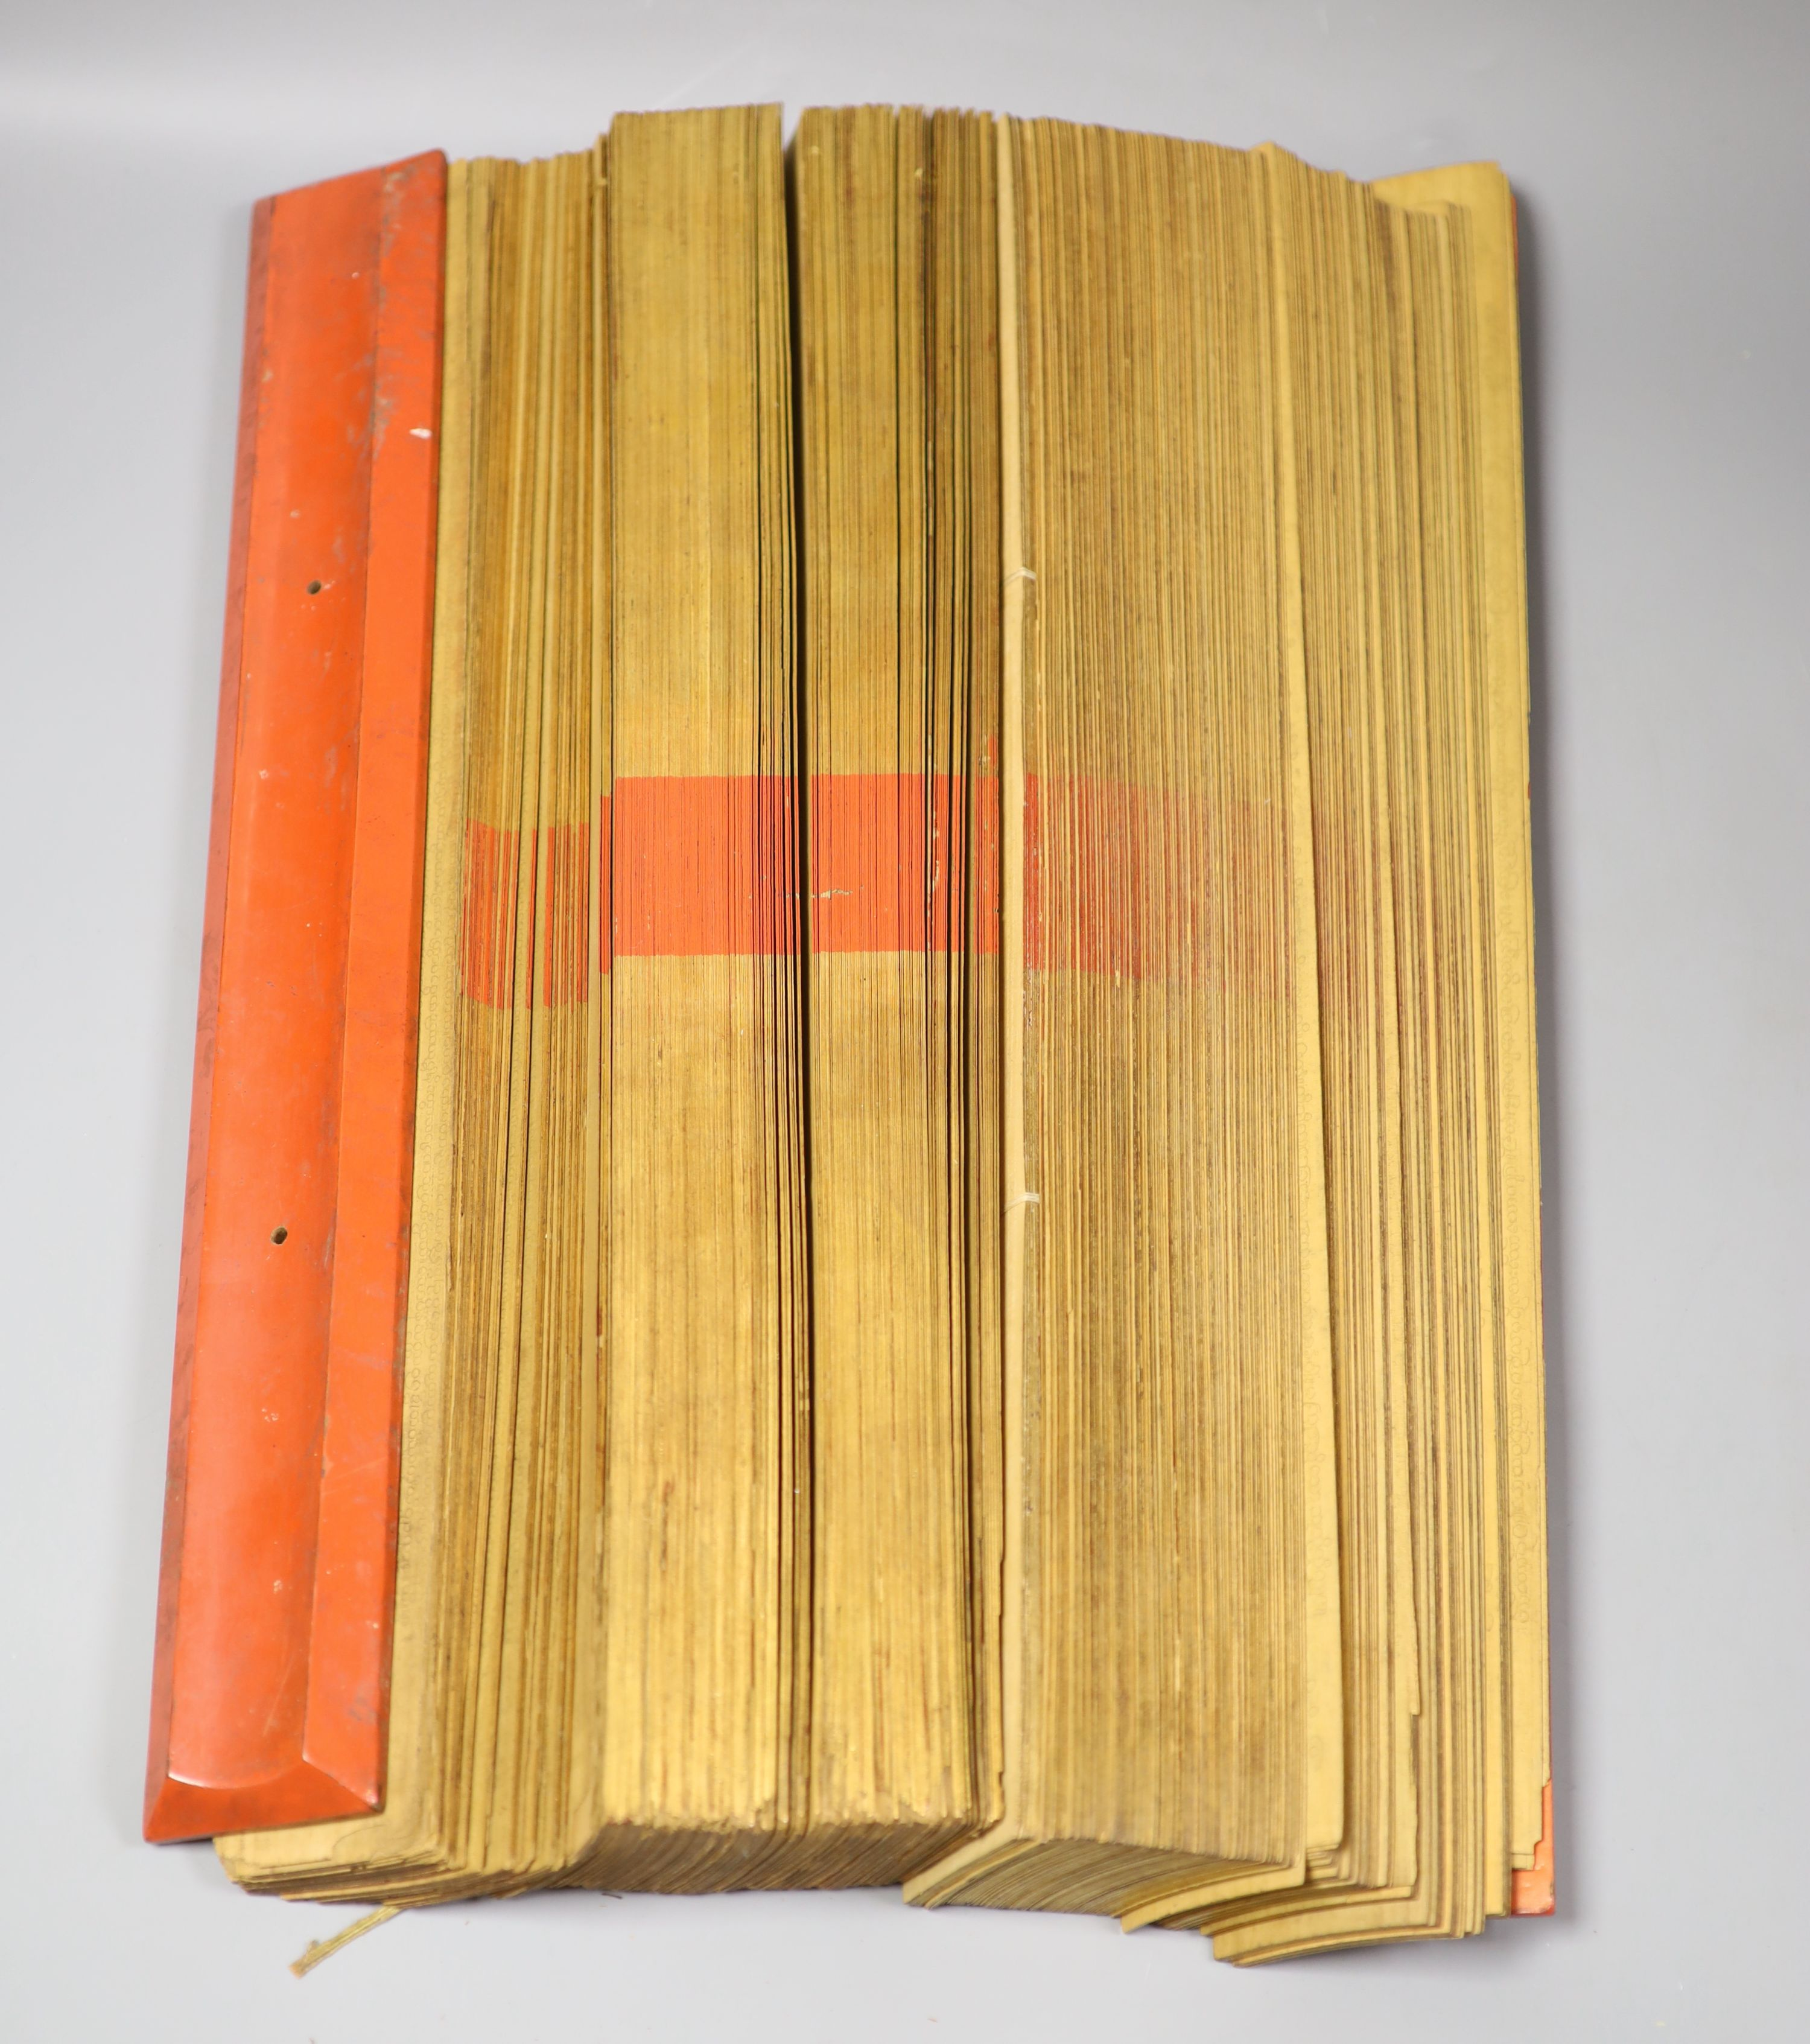 Three 19th century Burmese lacquered Sutra manuscripts, each written in Pali on bamboo leaves, gold - Image 2 of 5